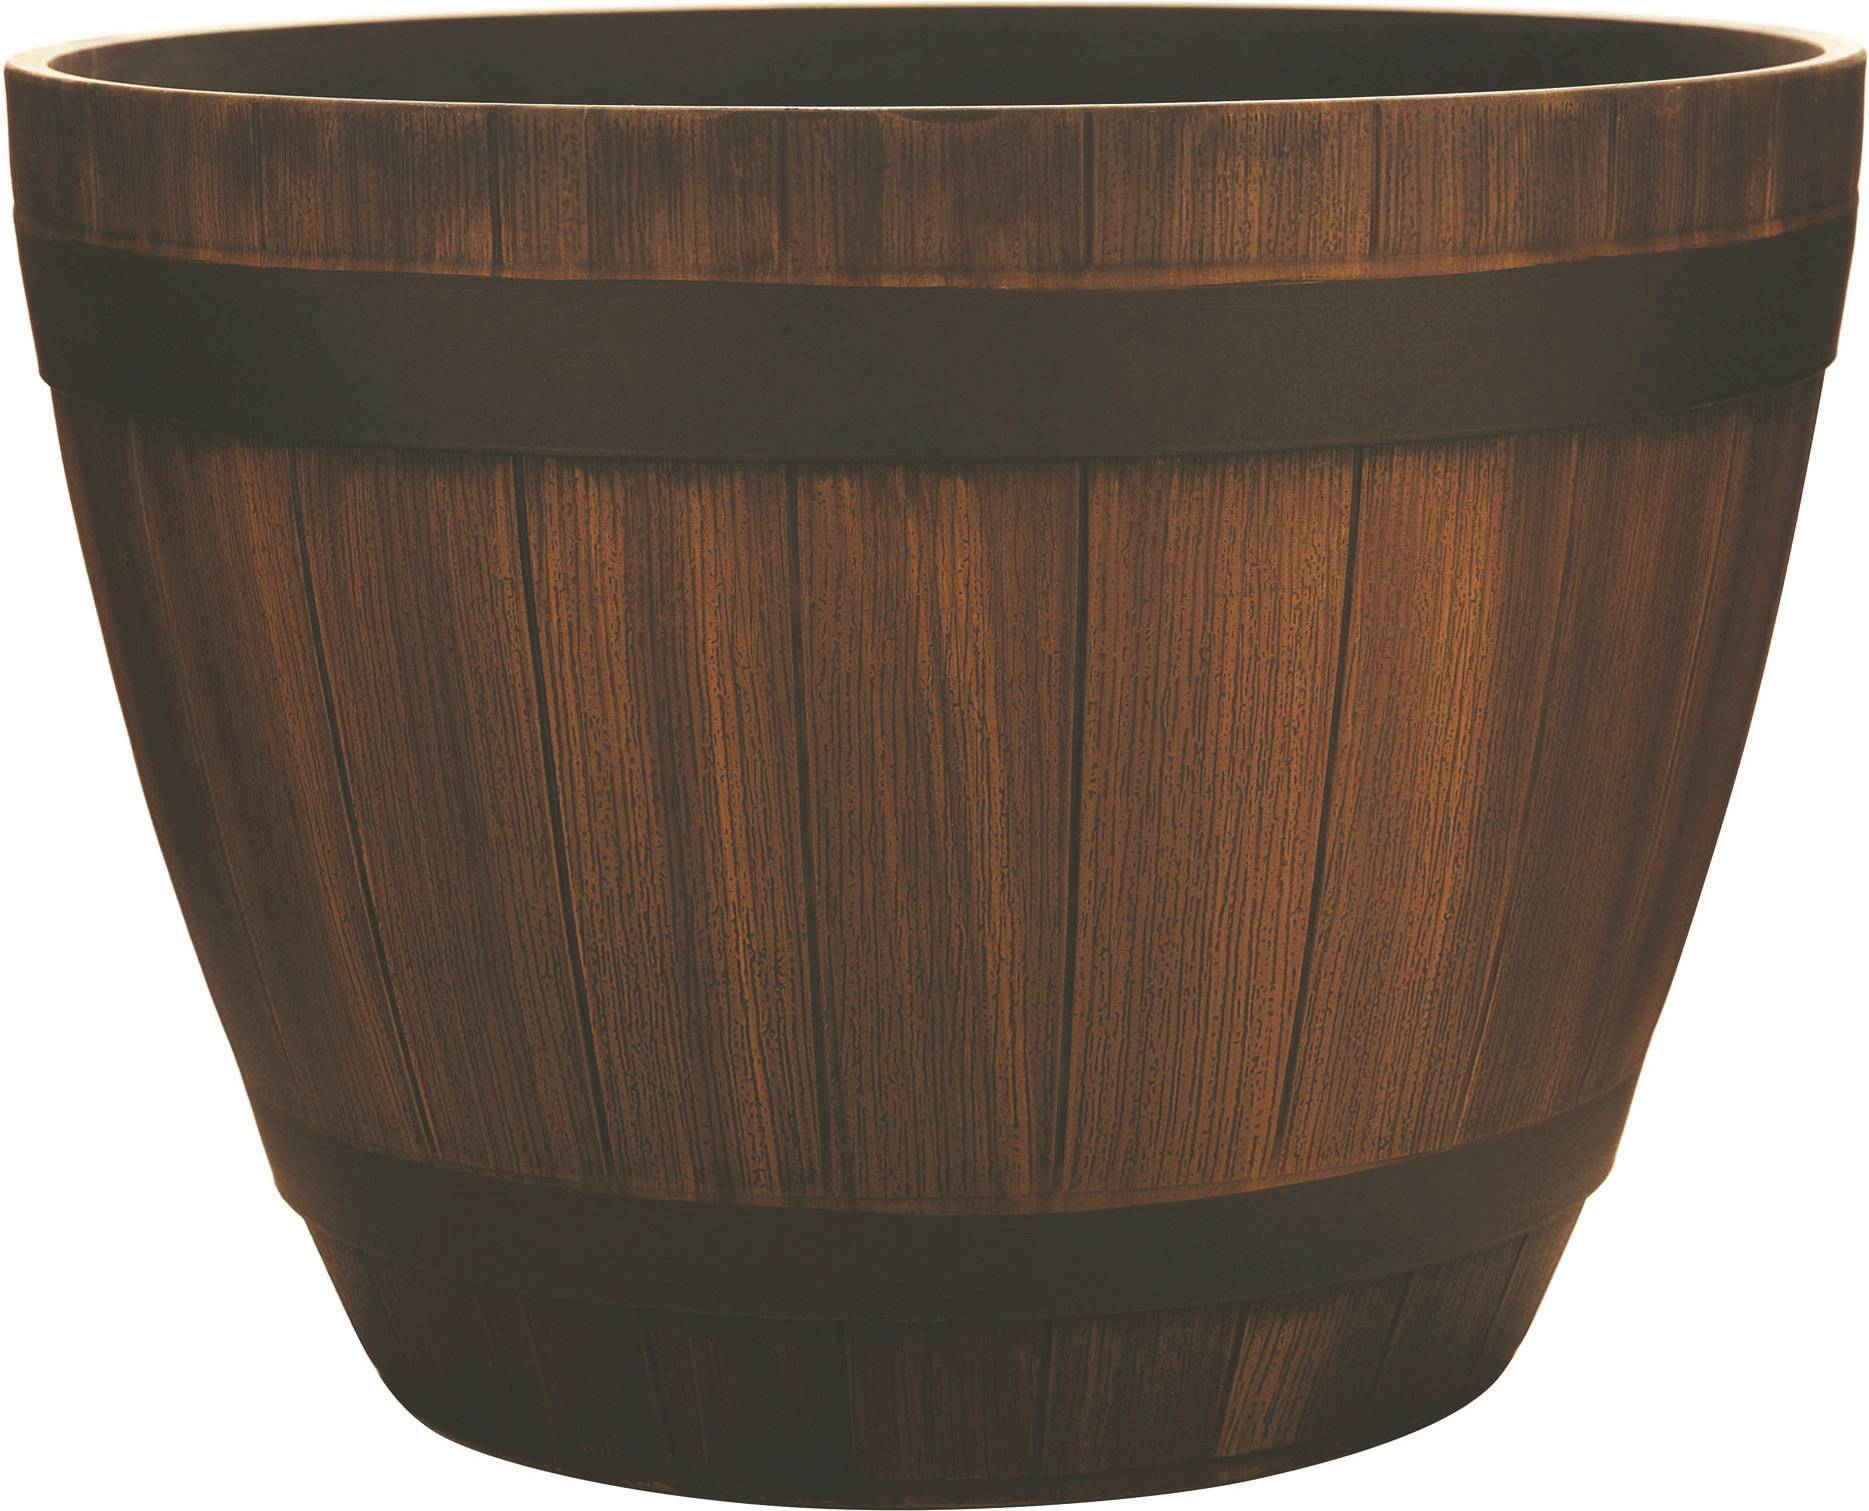 Southern Patio Hdr Wine Barrel Planter | eBay